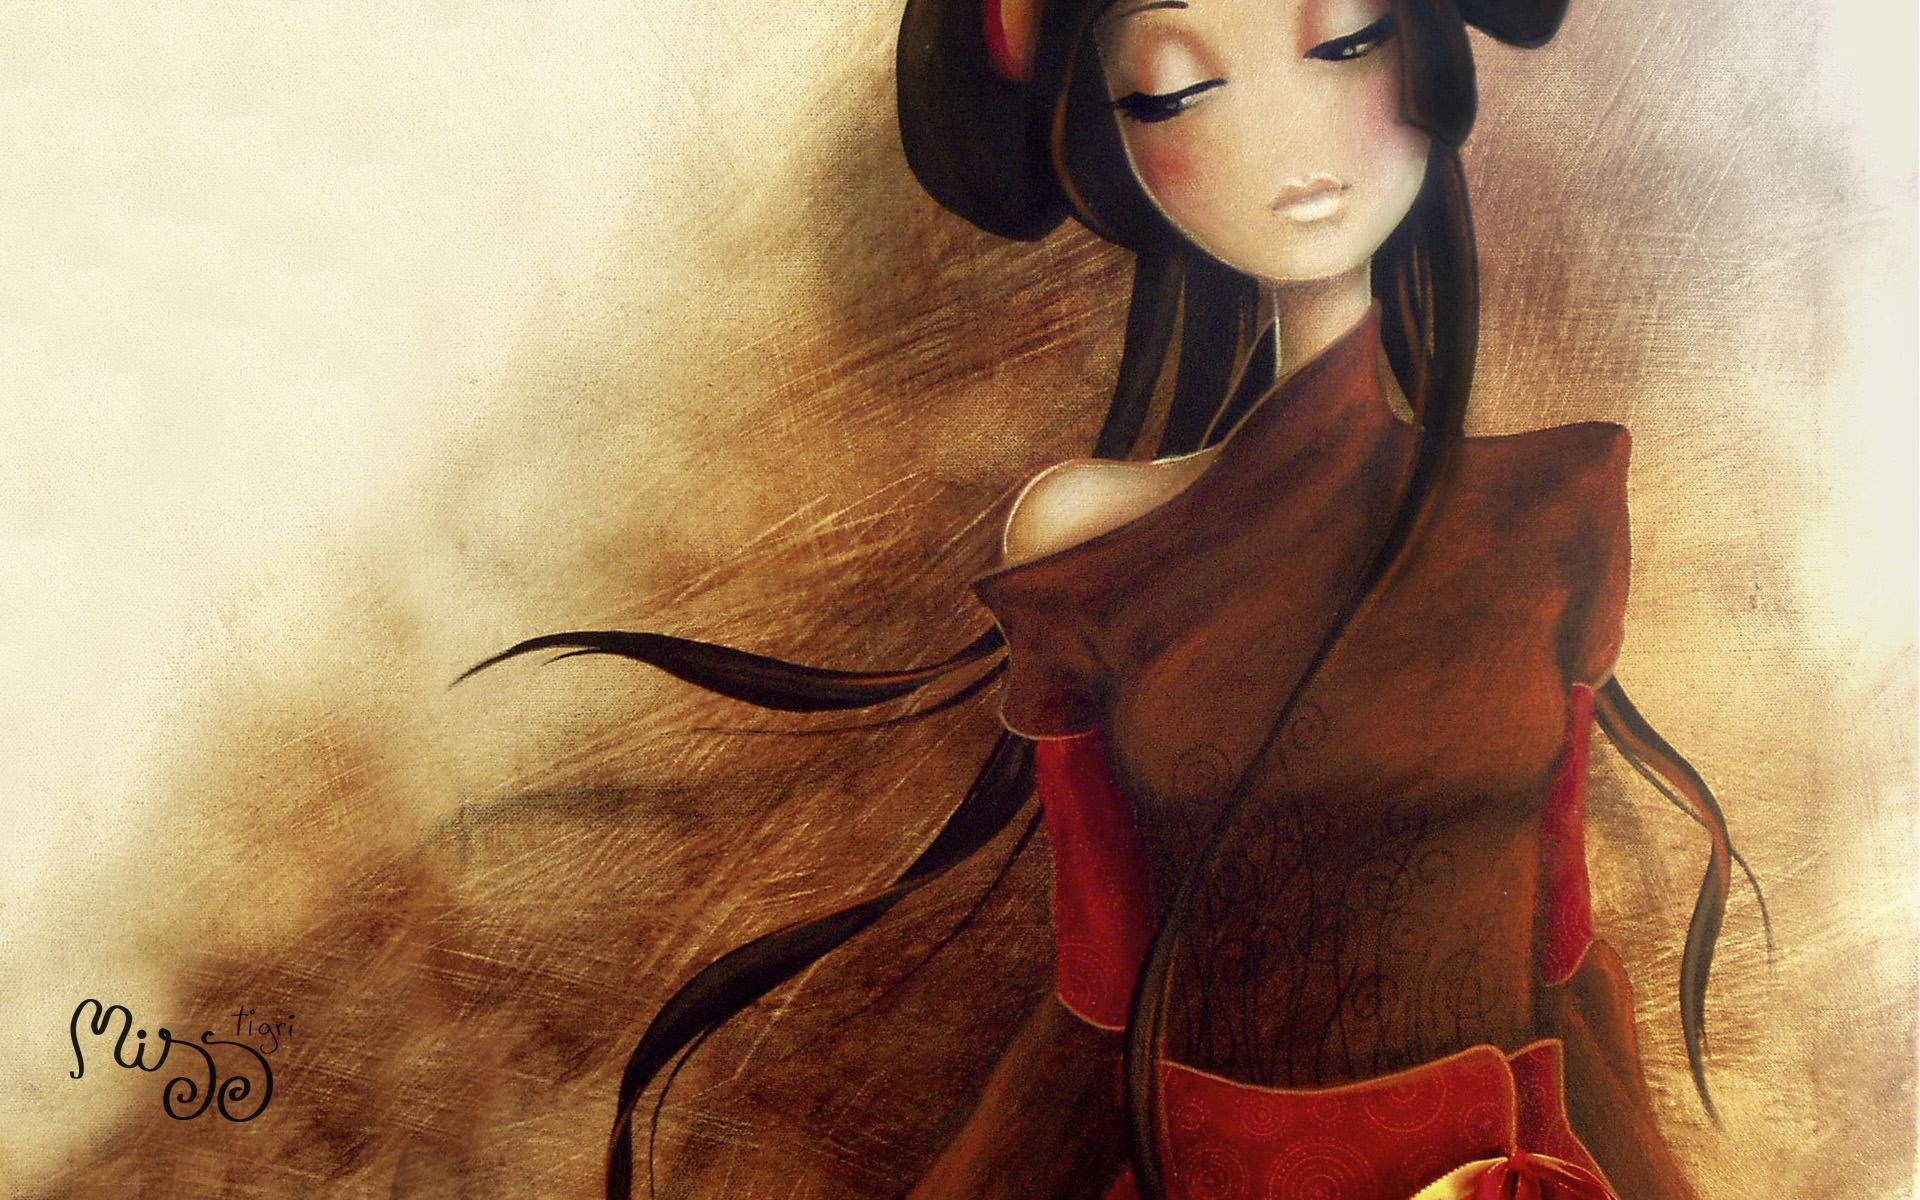 beautiful girl long hair character fine art oil painting design